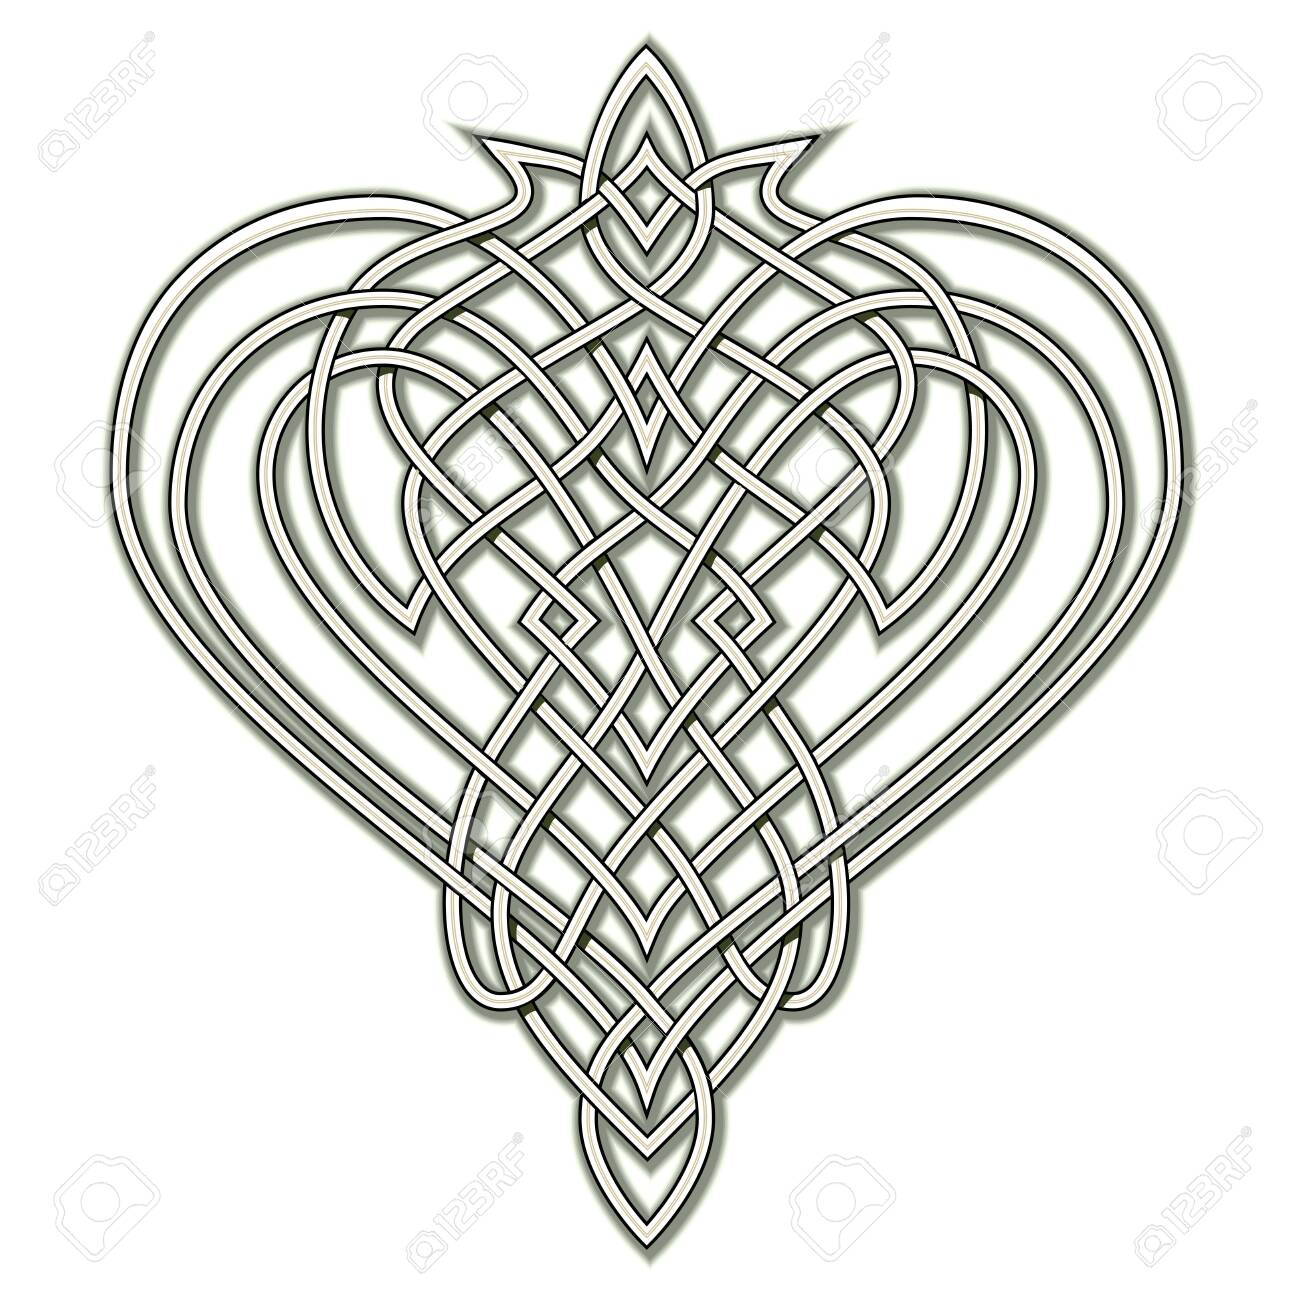 photograph relating to Printable Celtic Knot Patterns identified as Myth drawing of Celtic prominent ornament with interweaving..